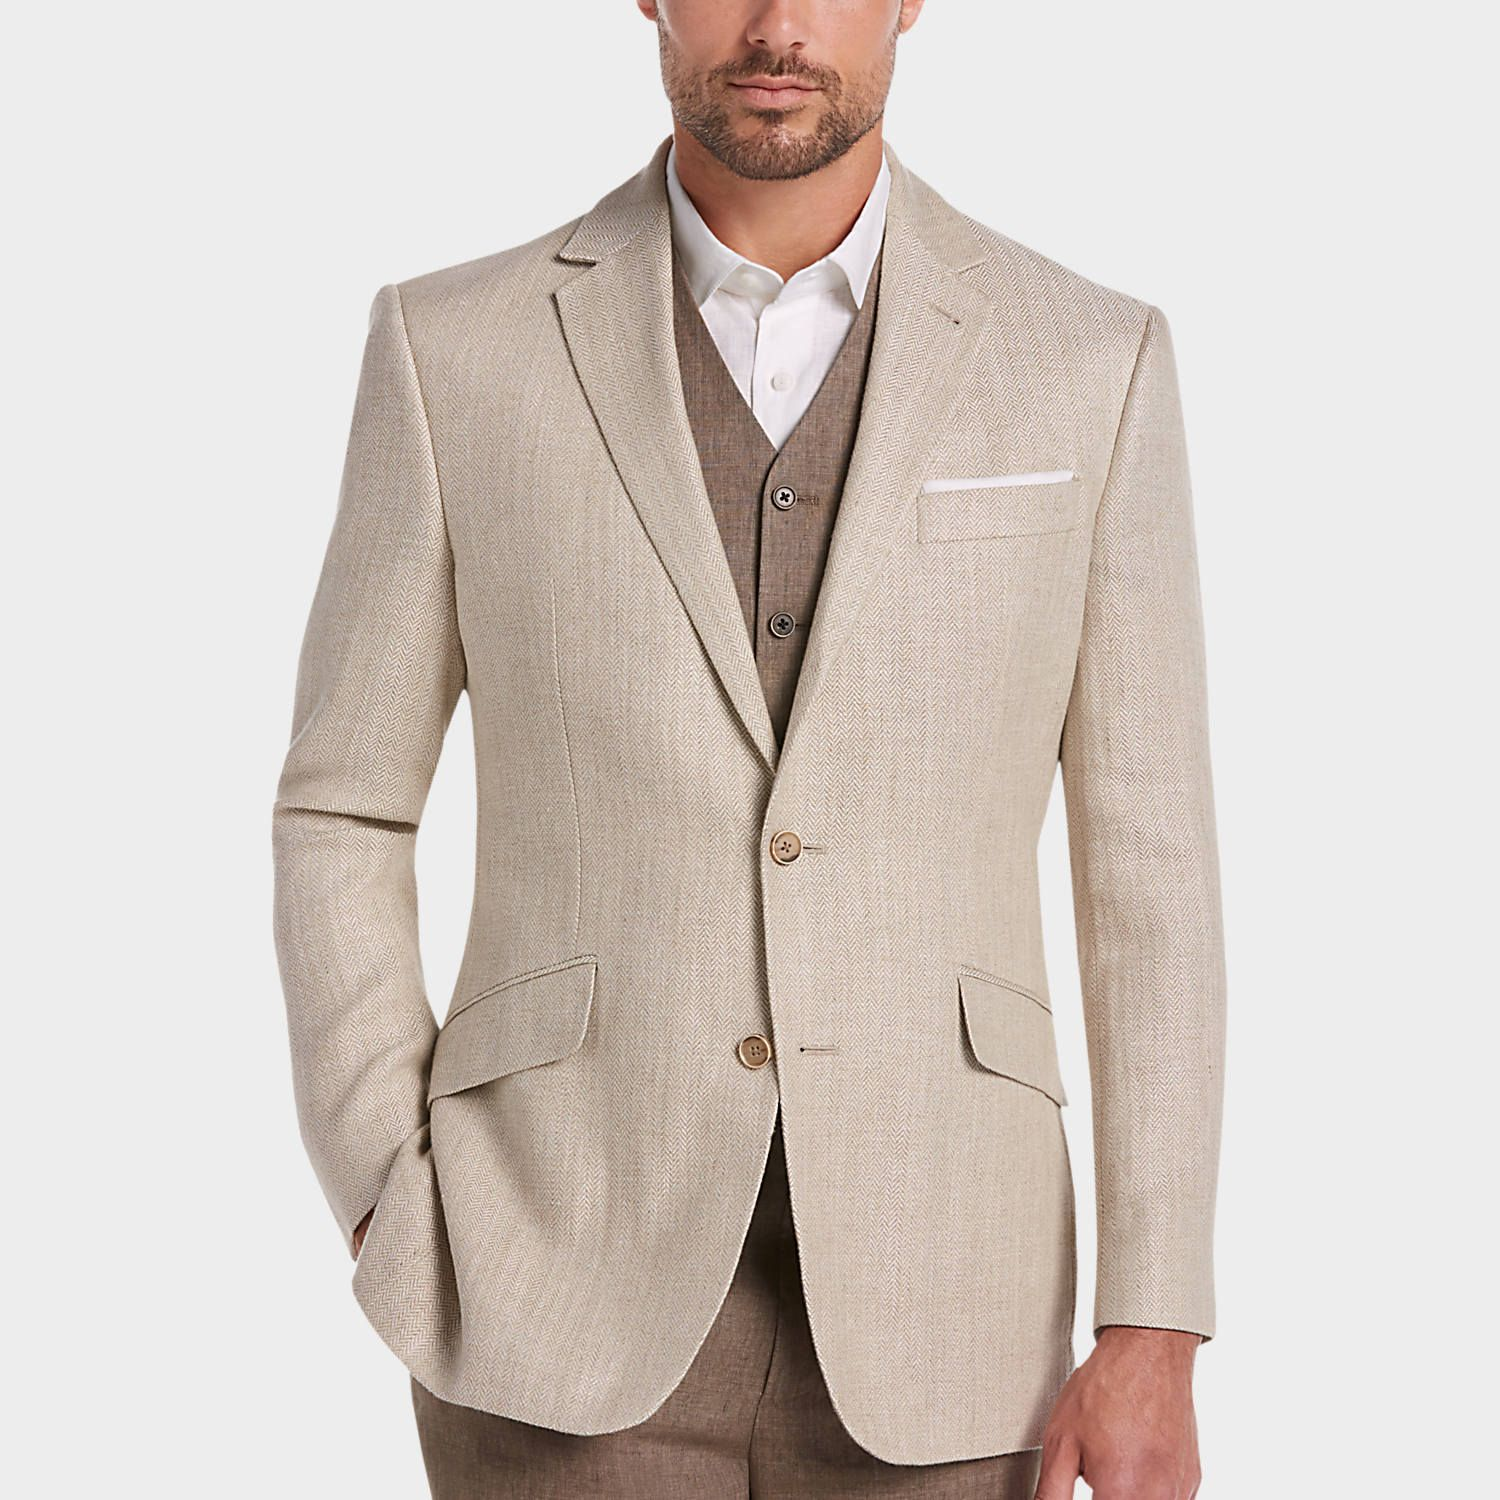 Buy a Joseph Abboud Tan Herringbone Modern Fit Linen Sport Coat ...